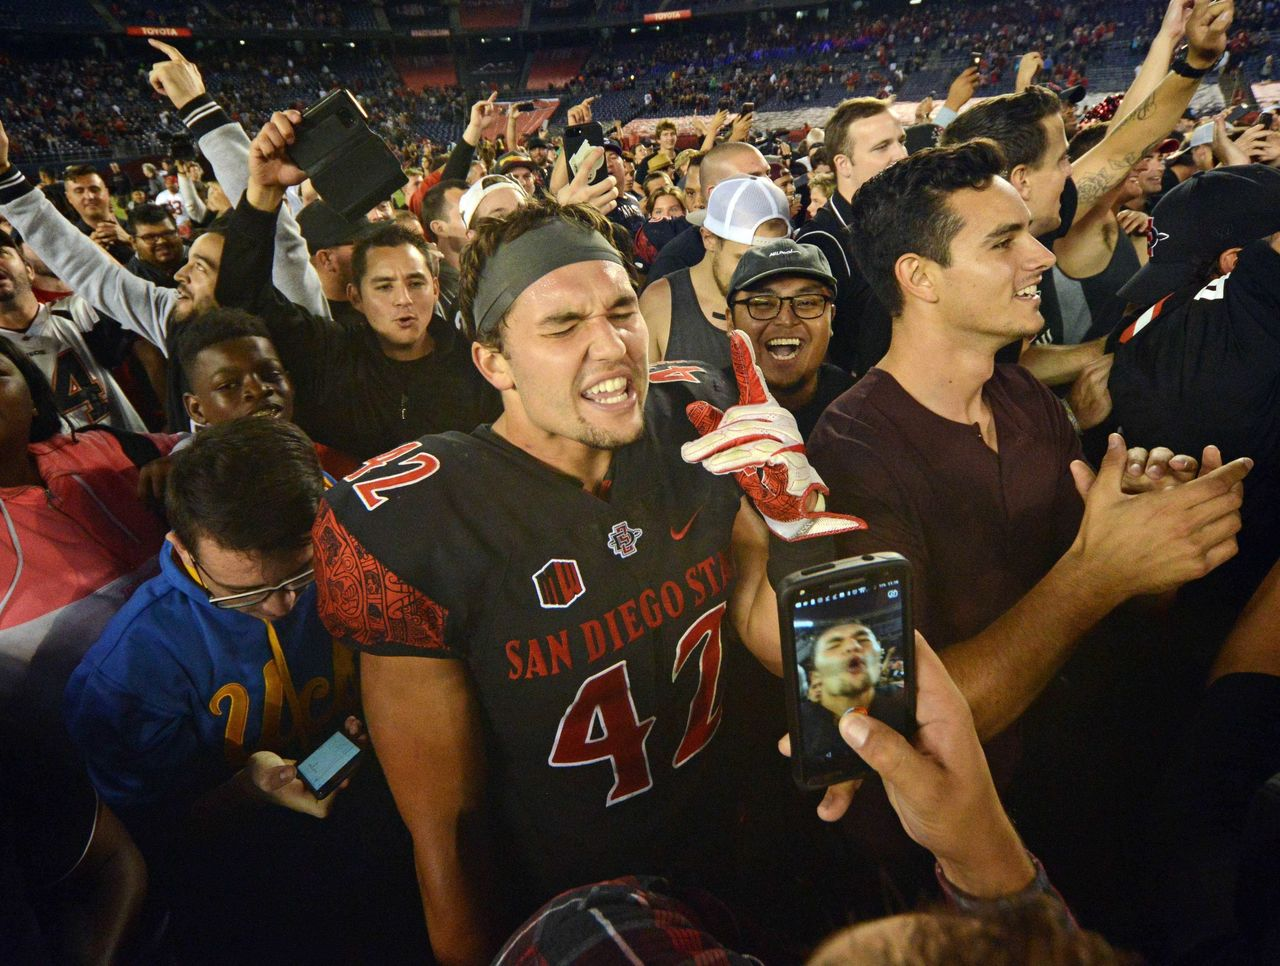 Cropped_2017-09-17t070010z_987718494_nocid_rtrmadp_3_ncaa-football-stanford-at-san-diego-state